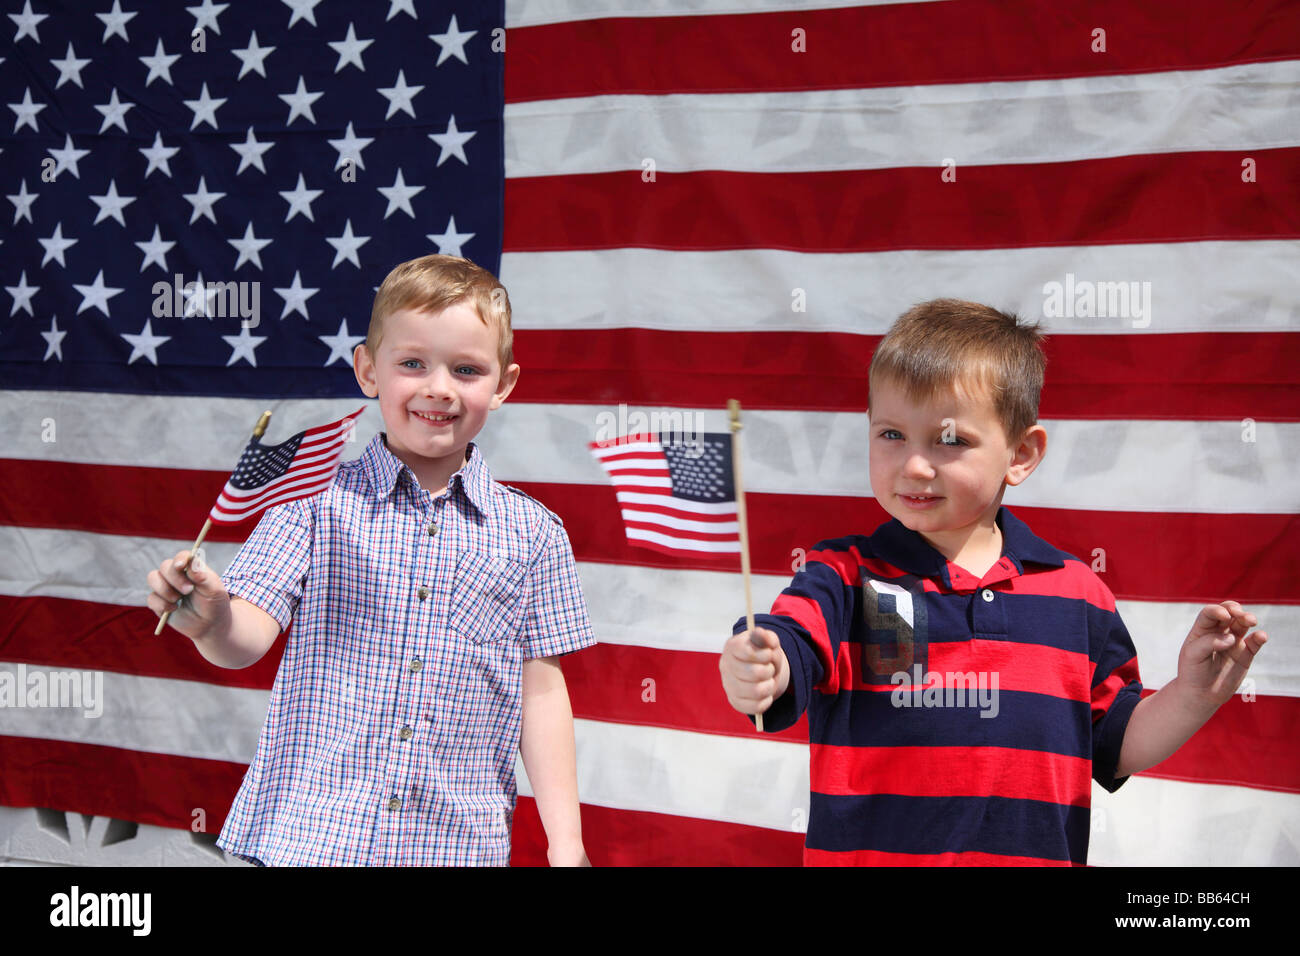 Two young boys waving American Flags - Stock Image